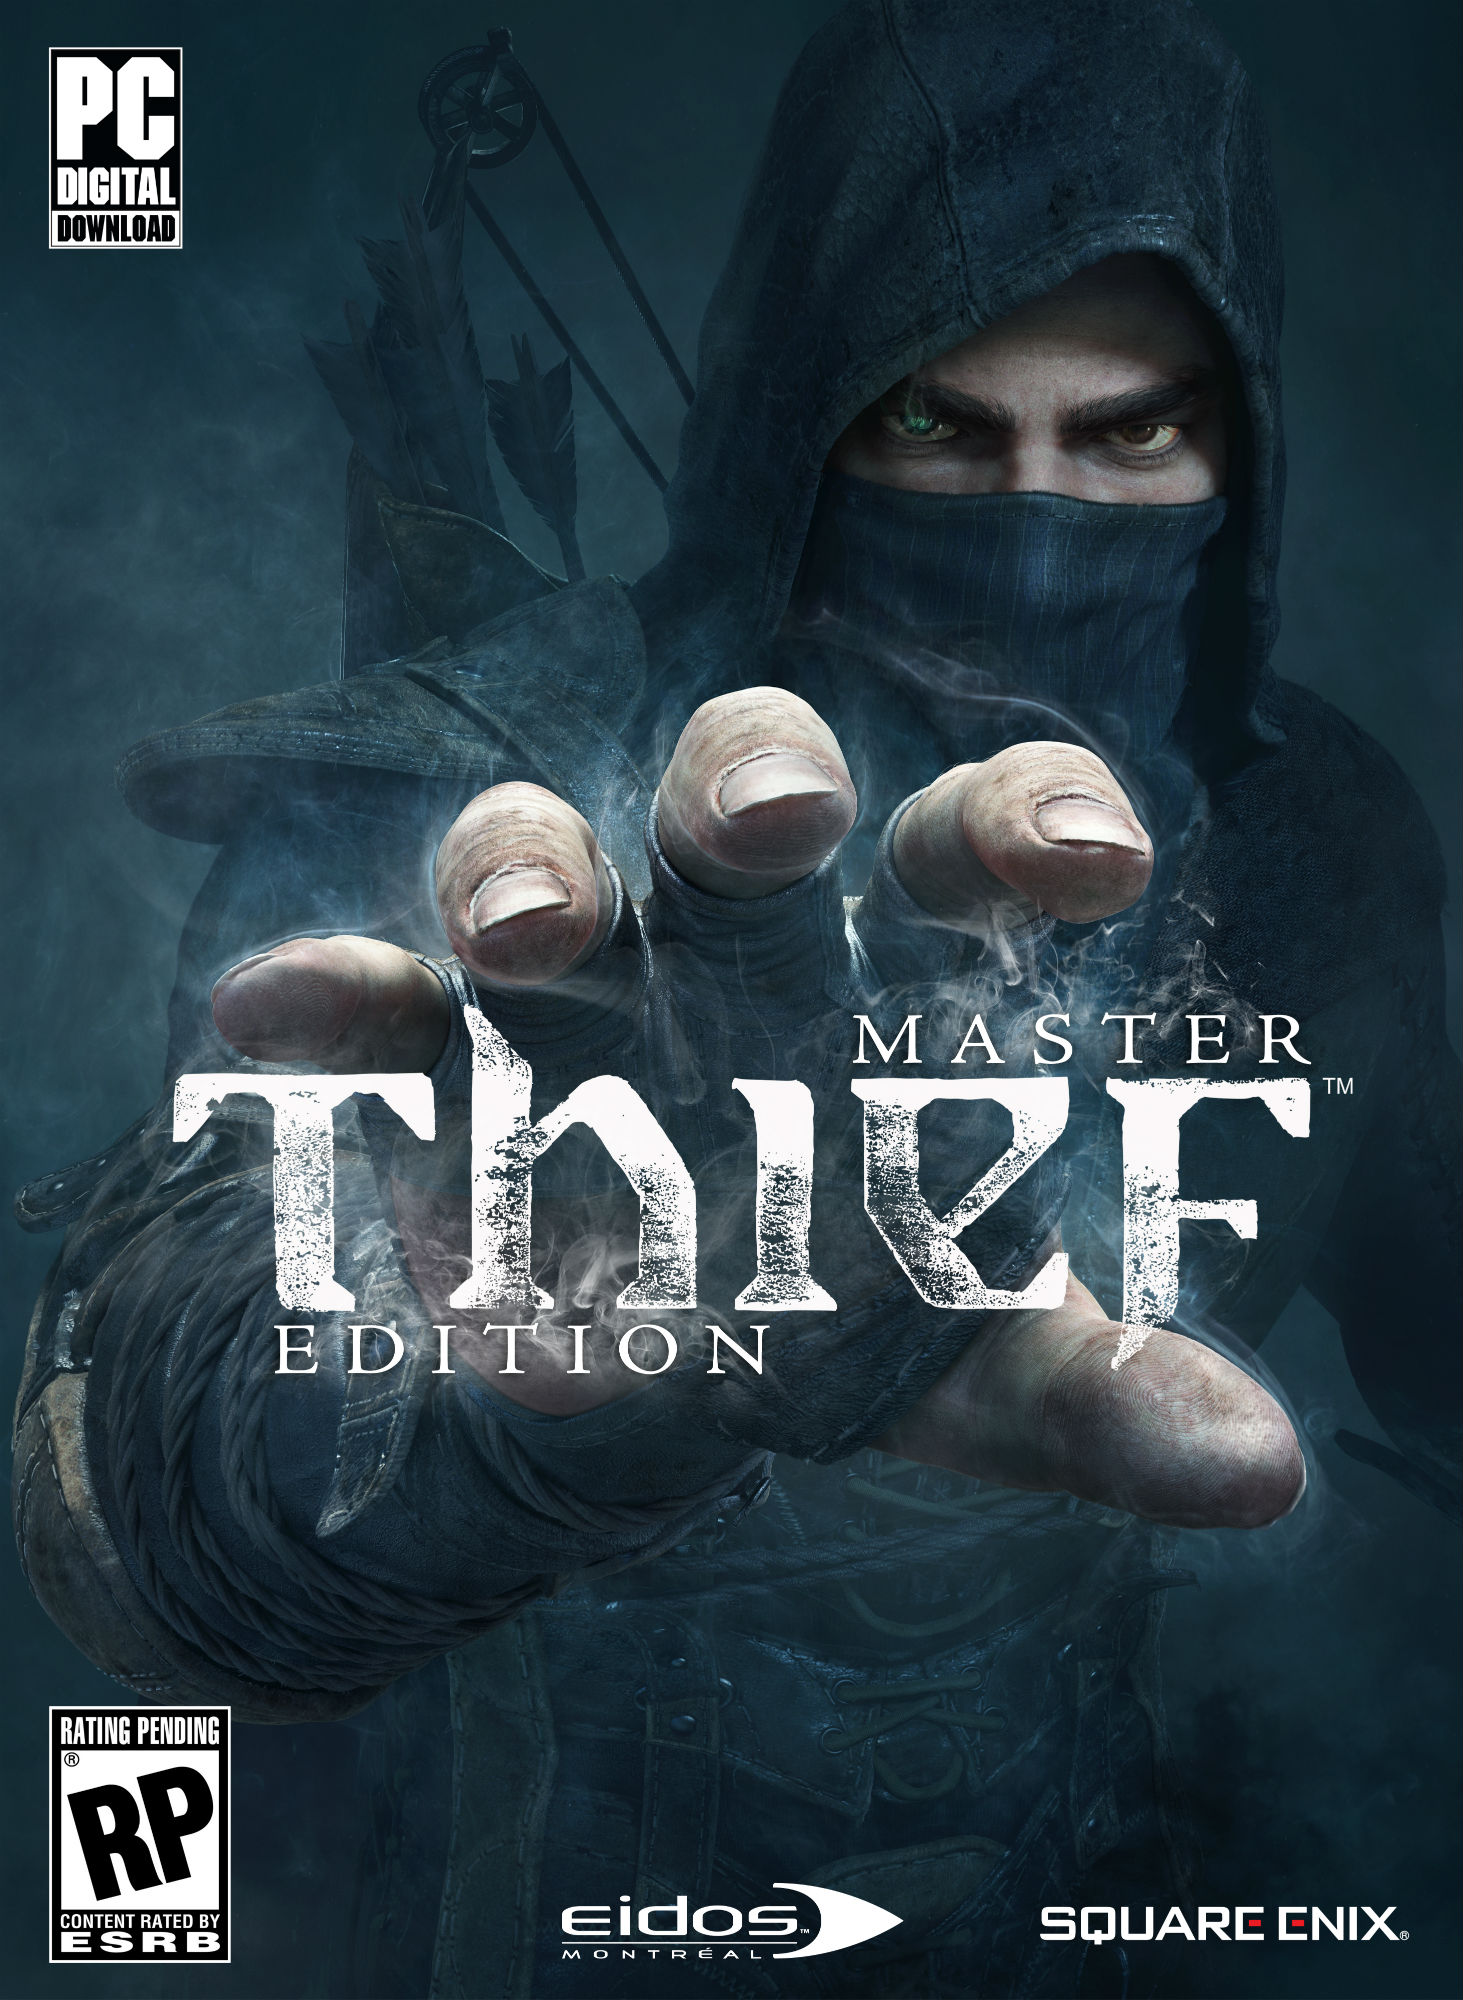 Poster Thief: Master Thief Edition (2014)